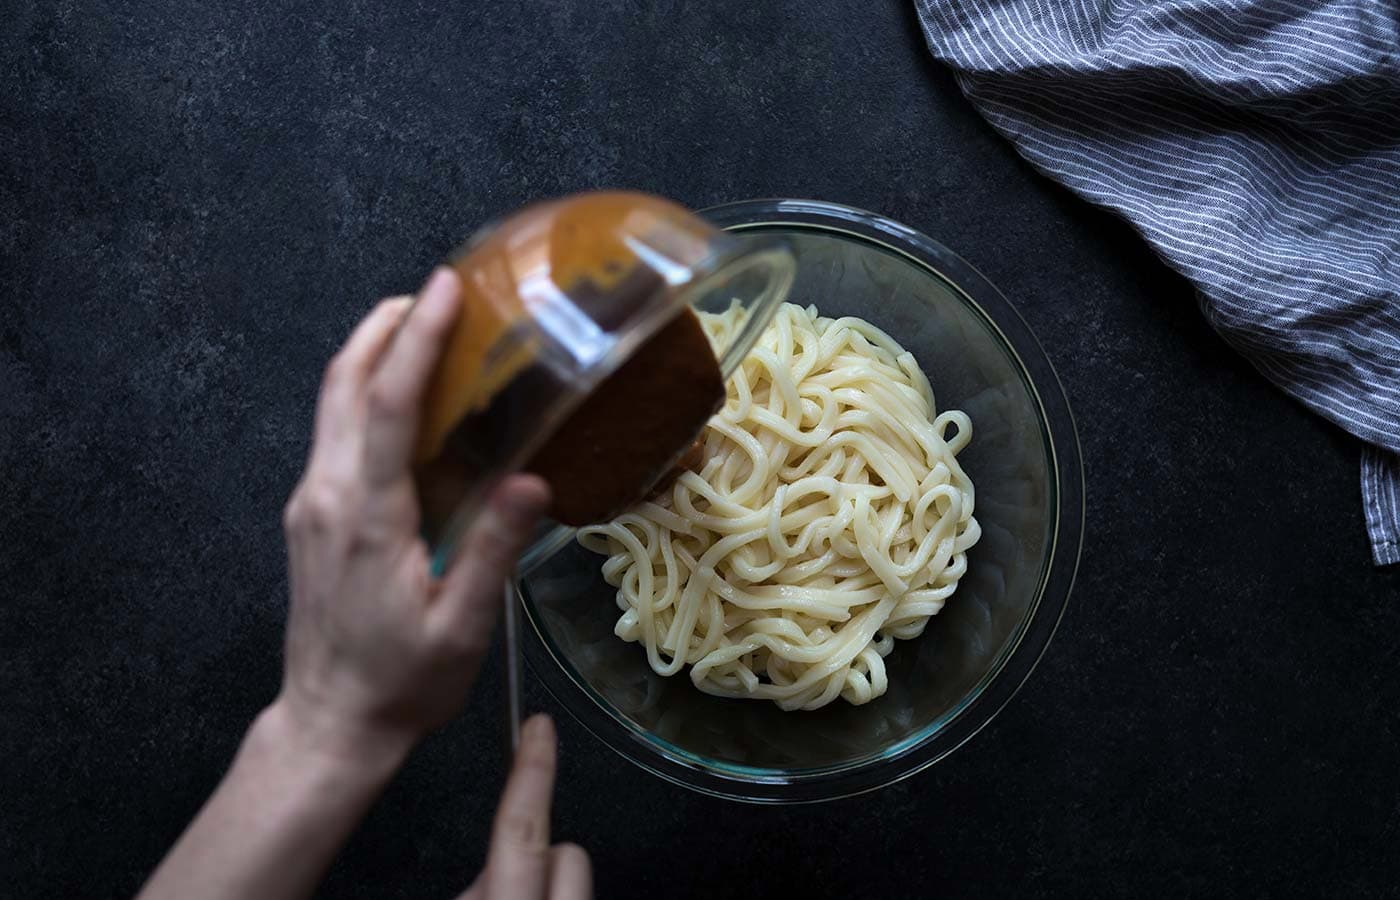 Short on time? These Spicy Cashew Butter Udon Noodles come together in 10 minutes! Get the recipe from Savory Simple.